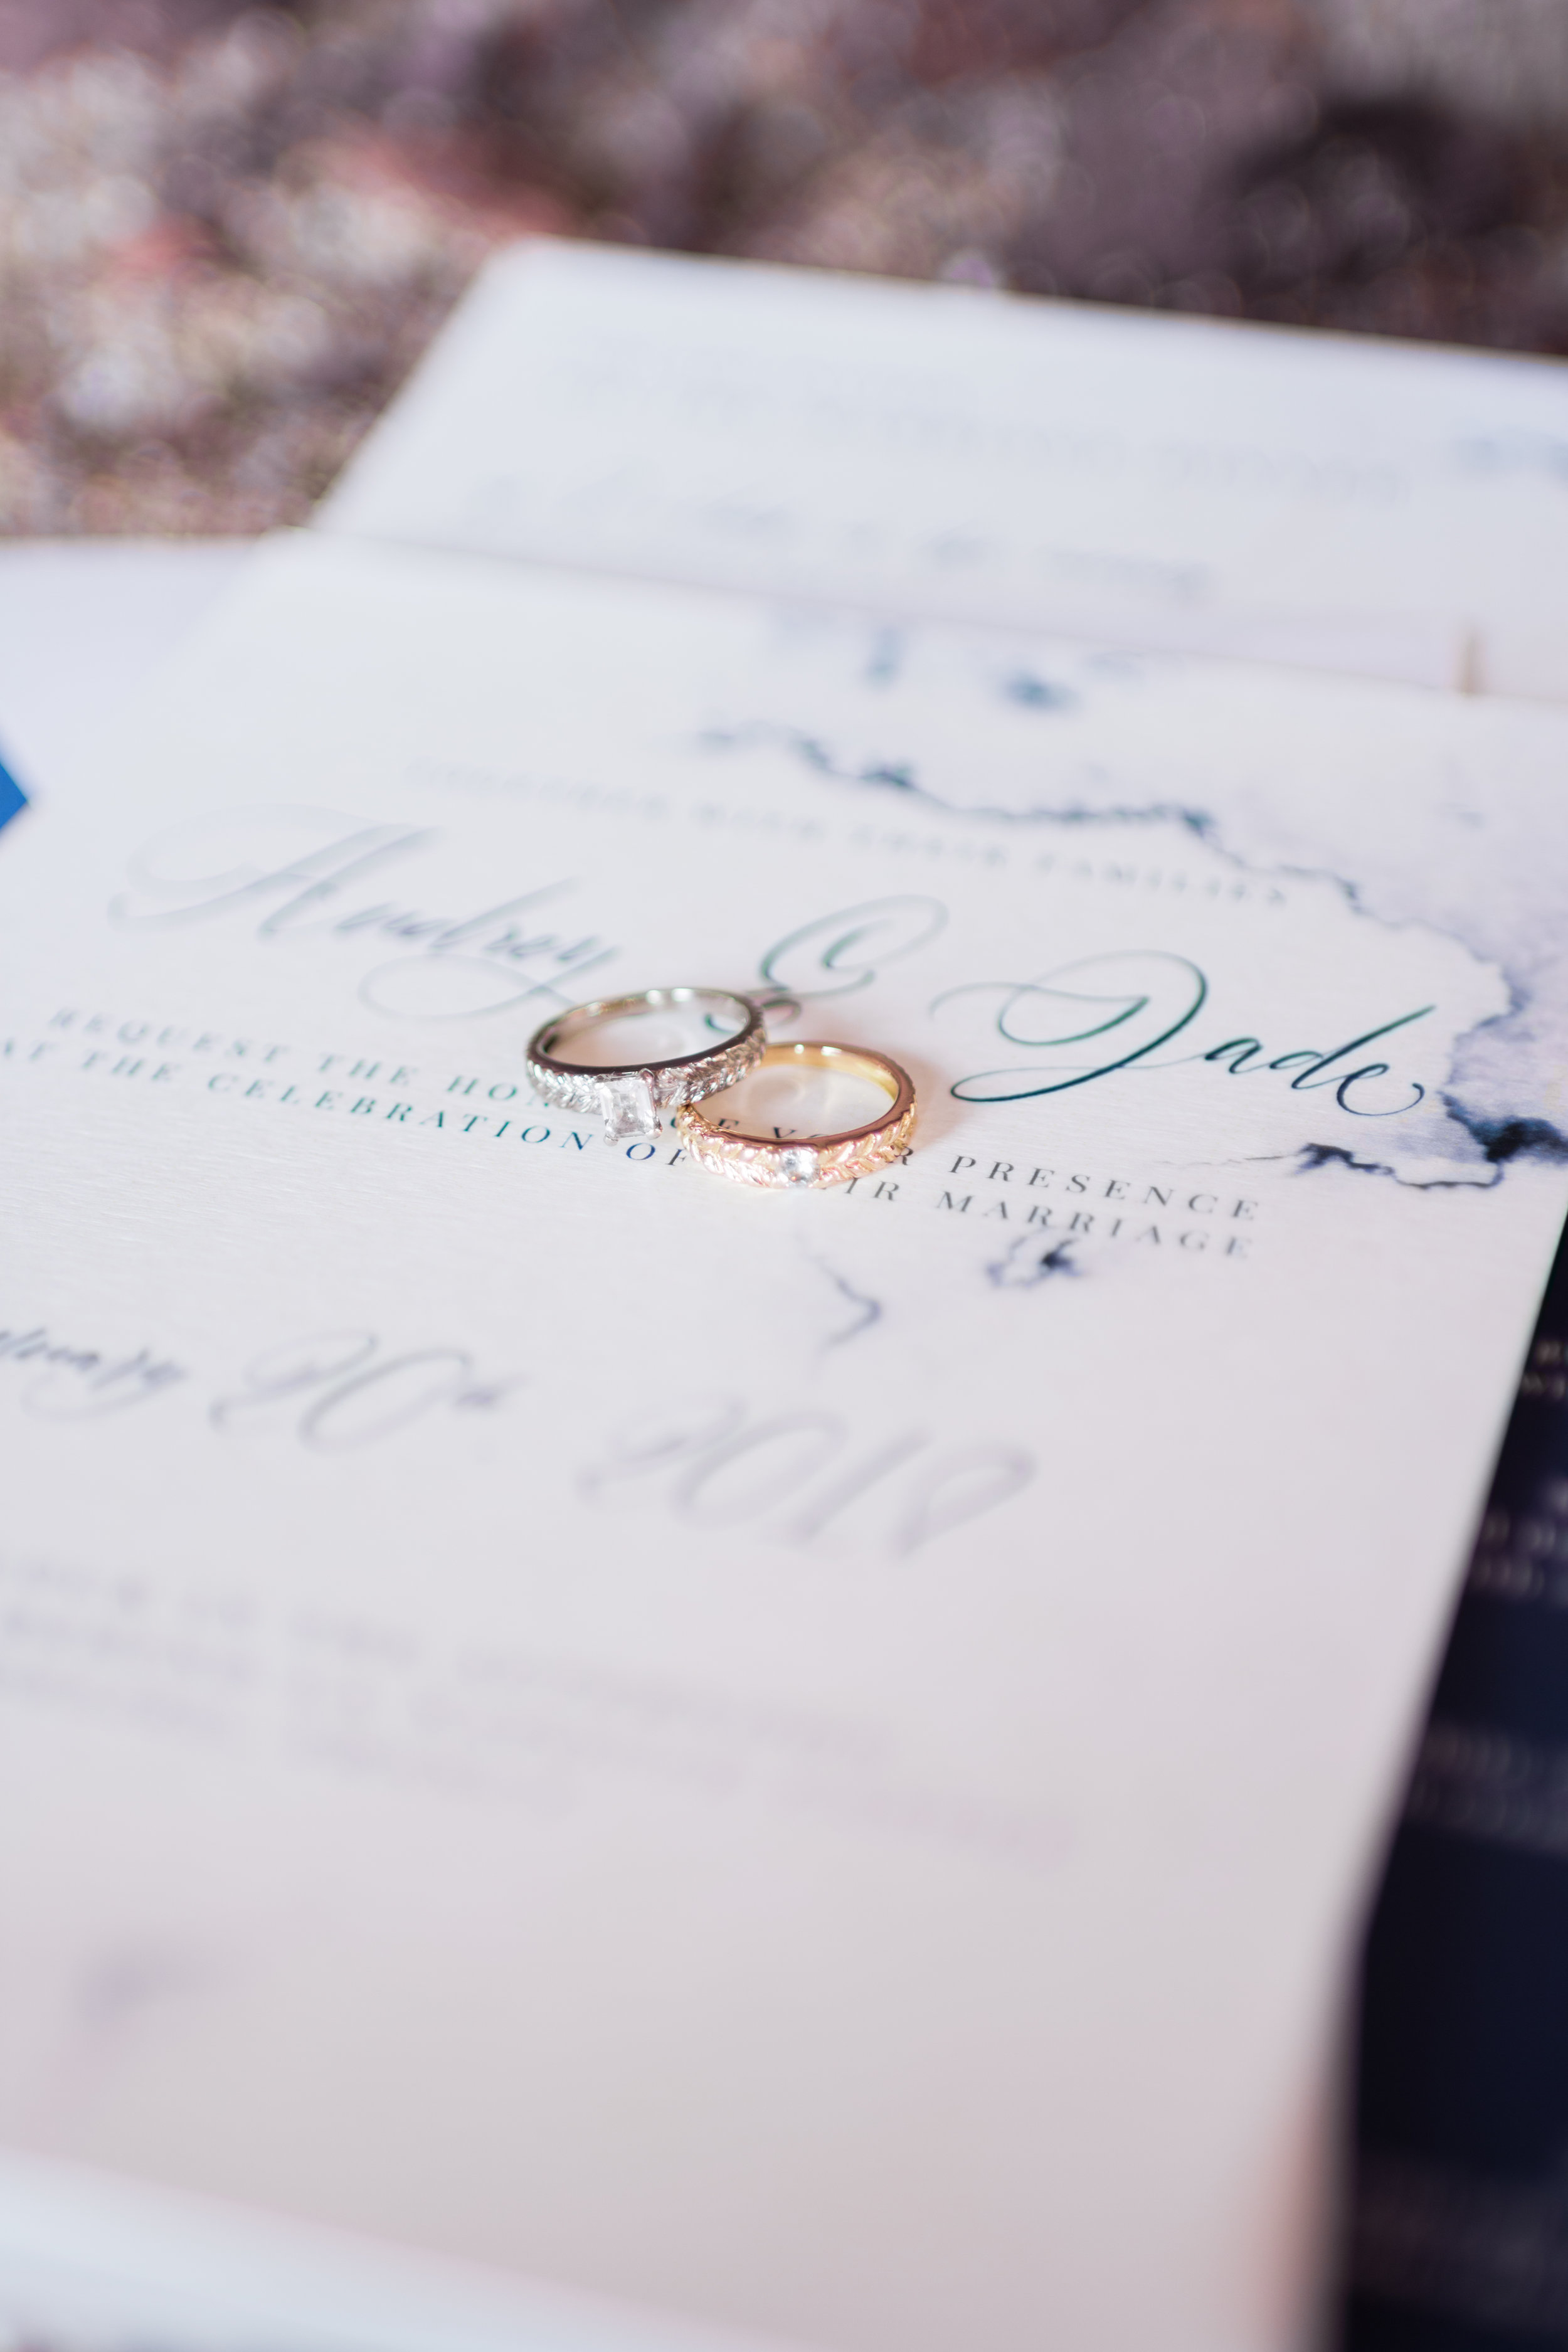 rings from Alice Worshop on a stationery from Atelier Frigga